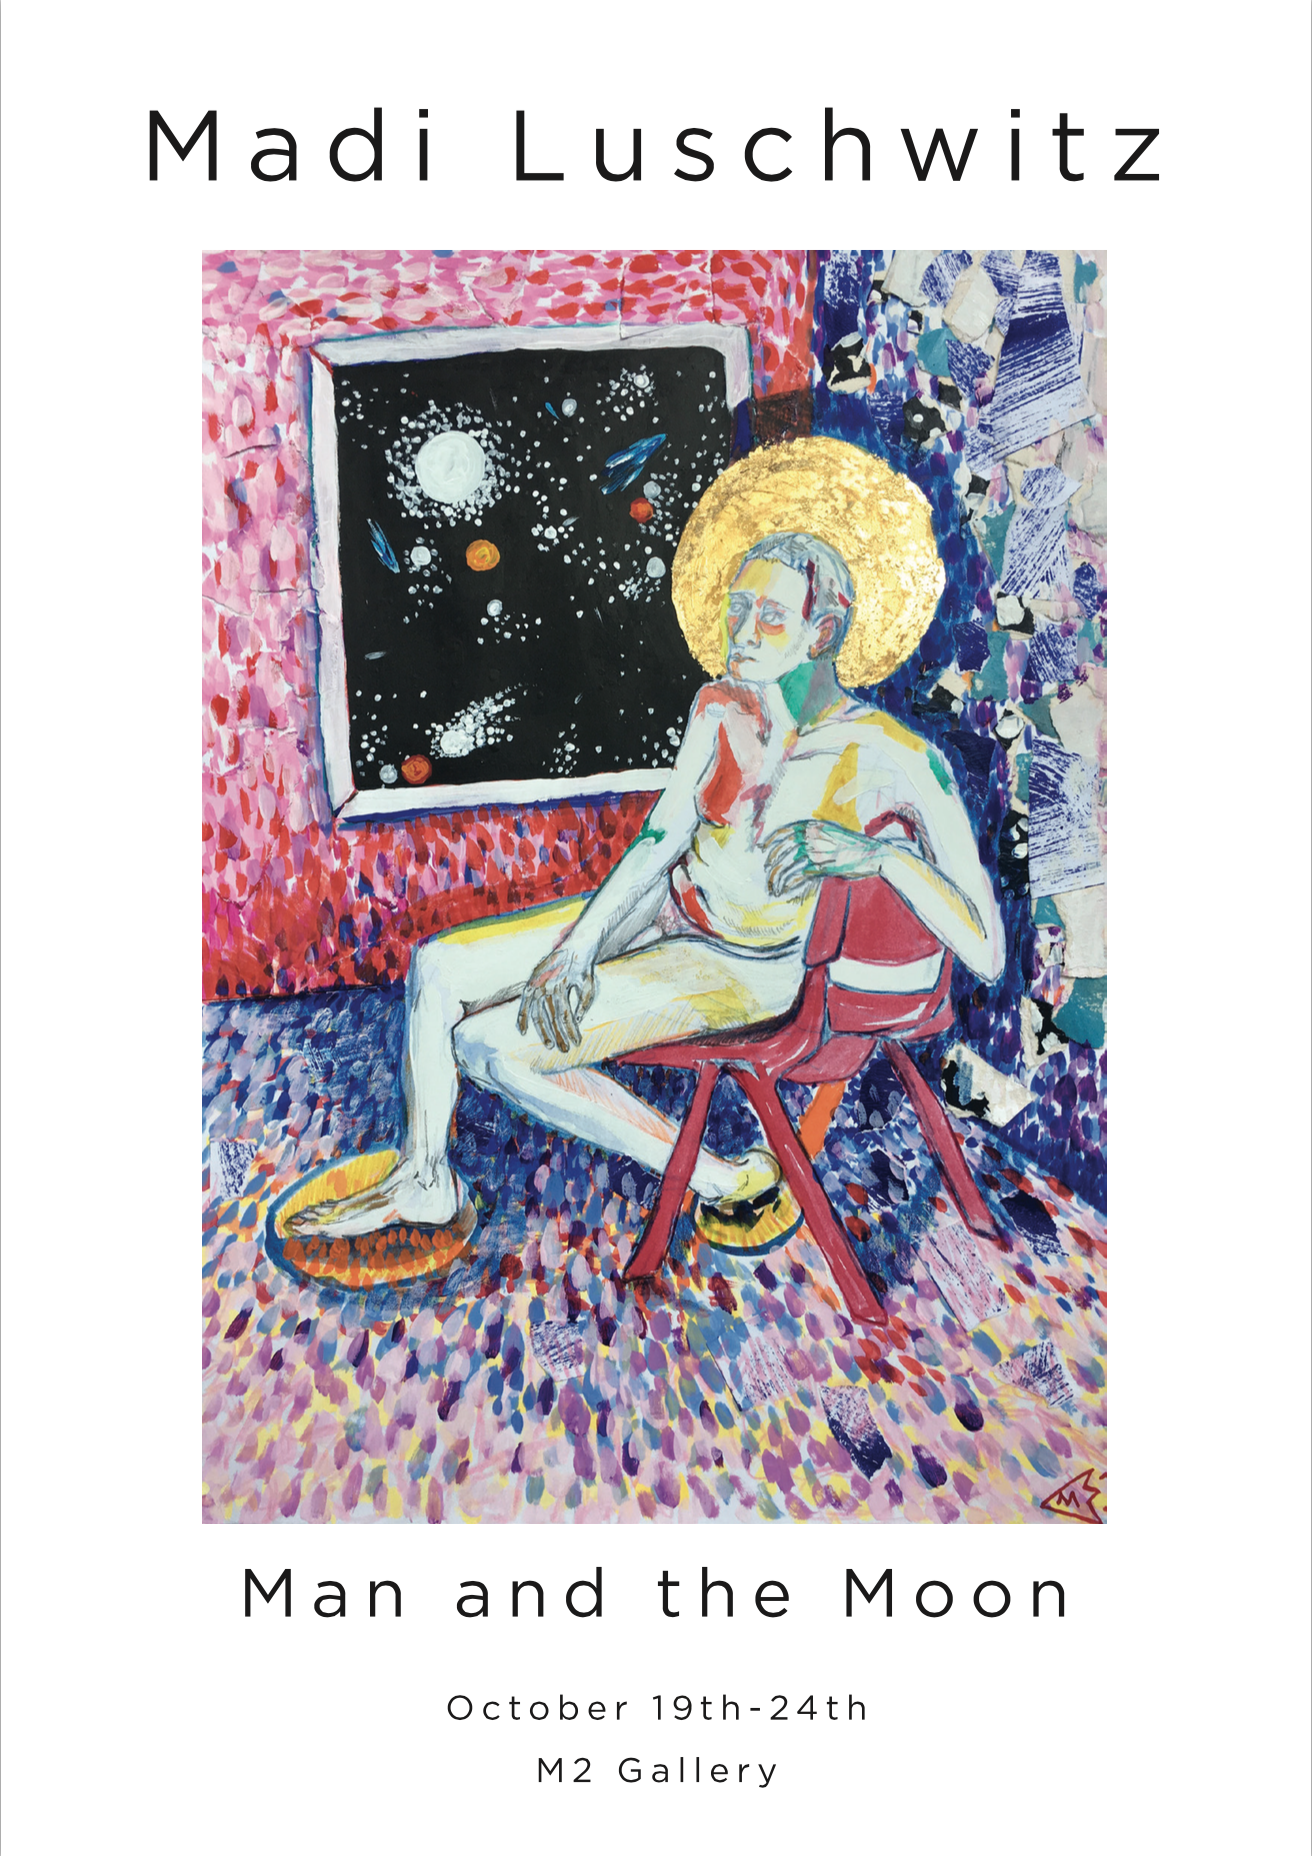 Man and the Moon - Opens October 19-24 @M2 Gallery in Surry HillsOpening night October 20th 6-9pm